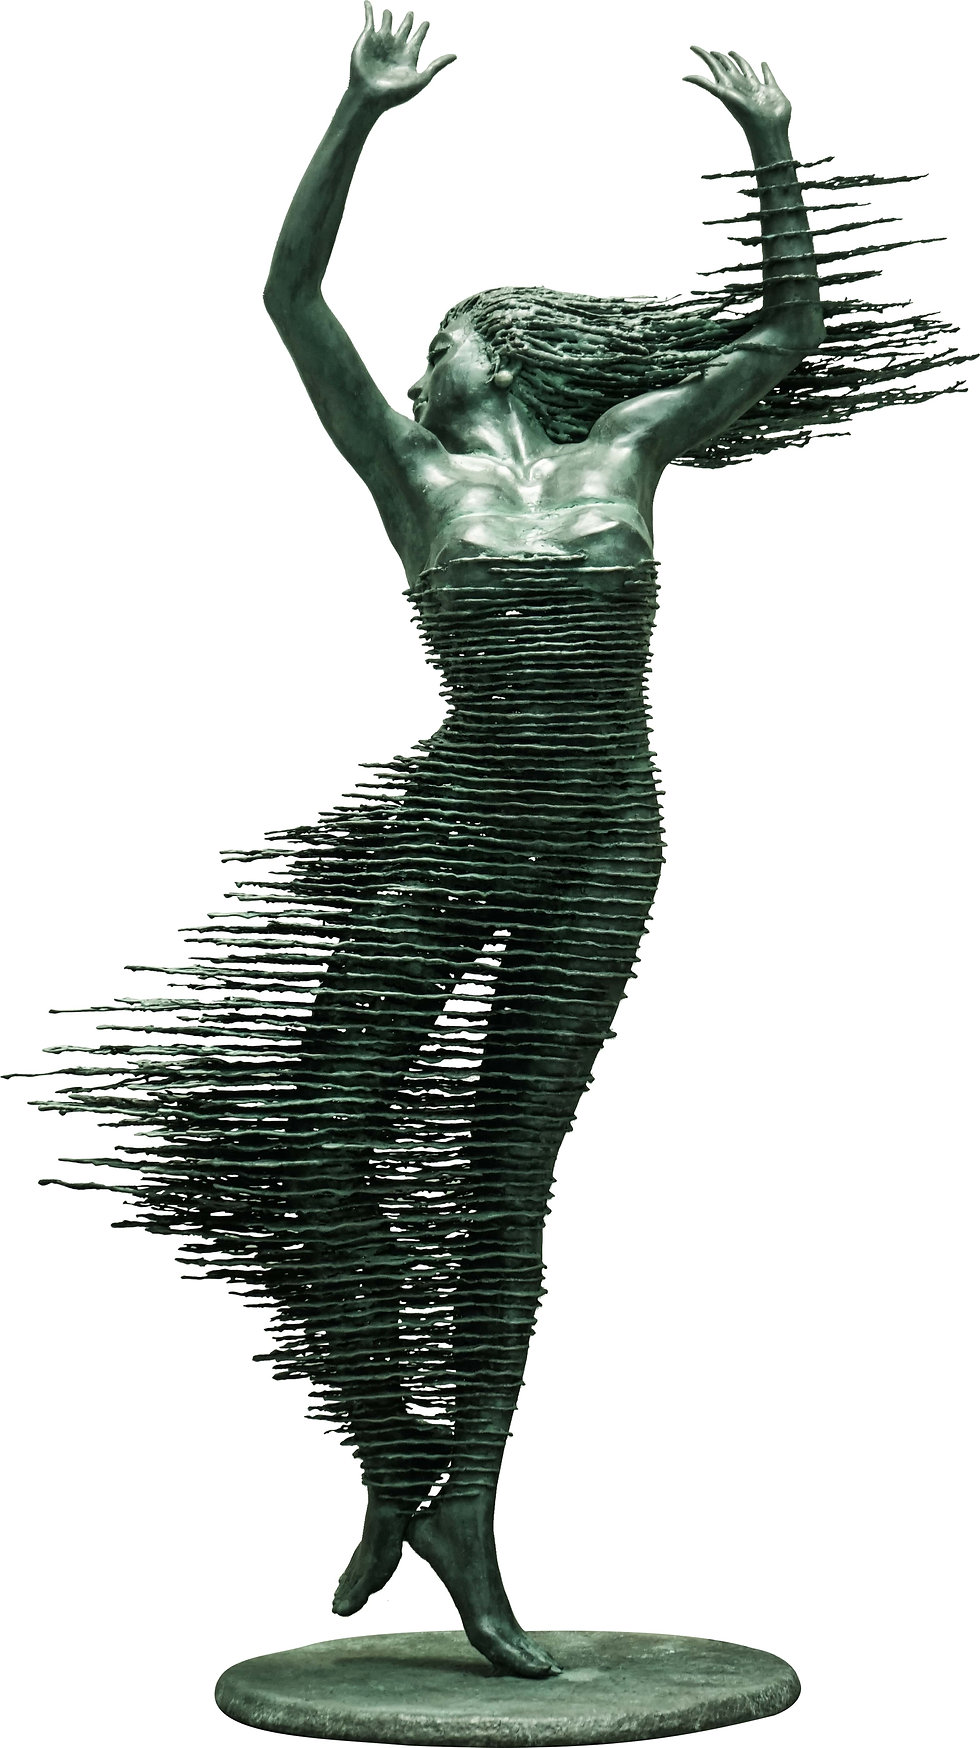 The work depicts a dancing woman, with her skirt and hair extending in the air, showing a combination of strength and grace.